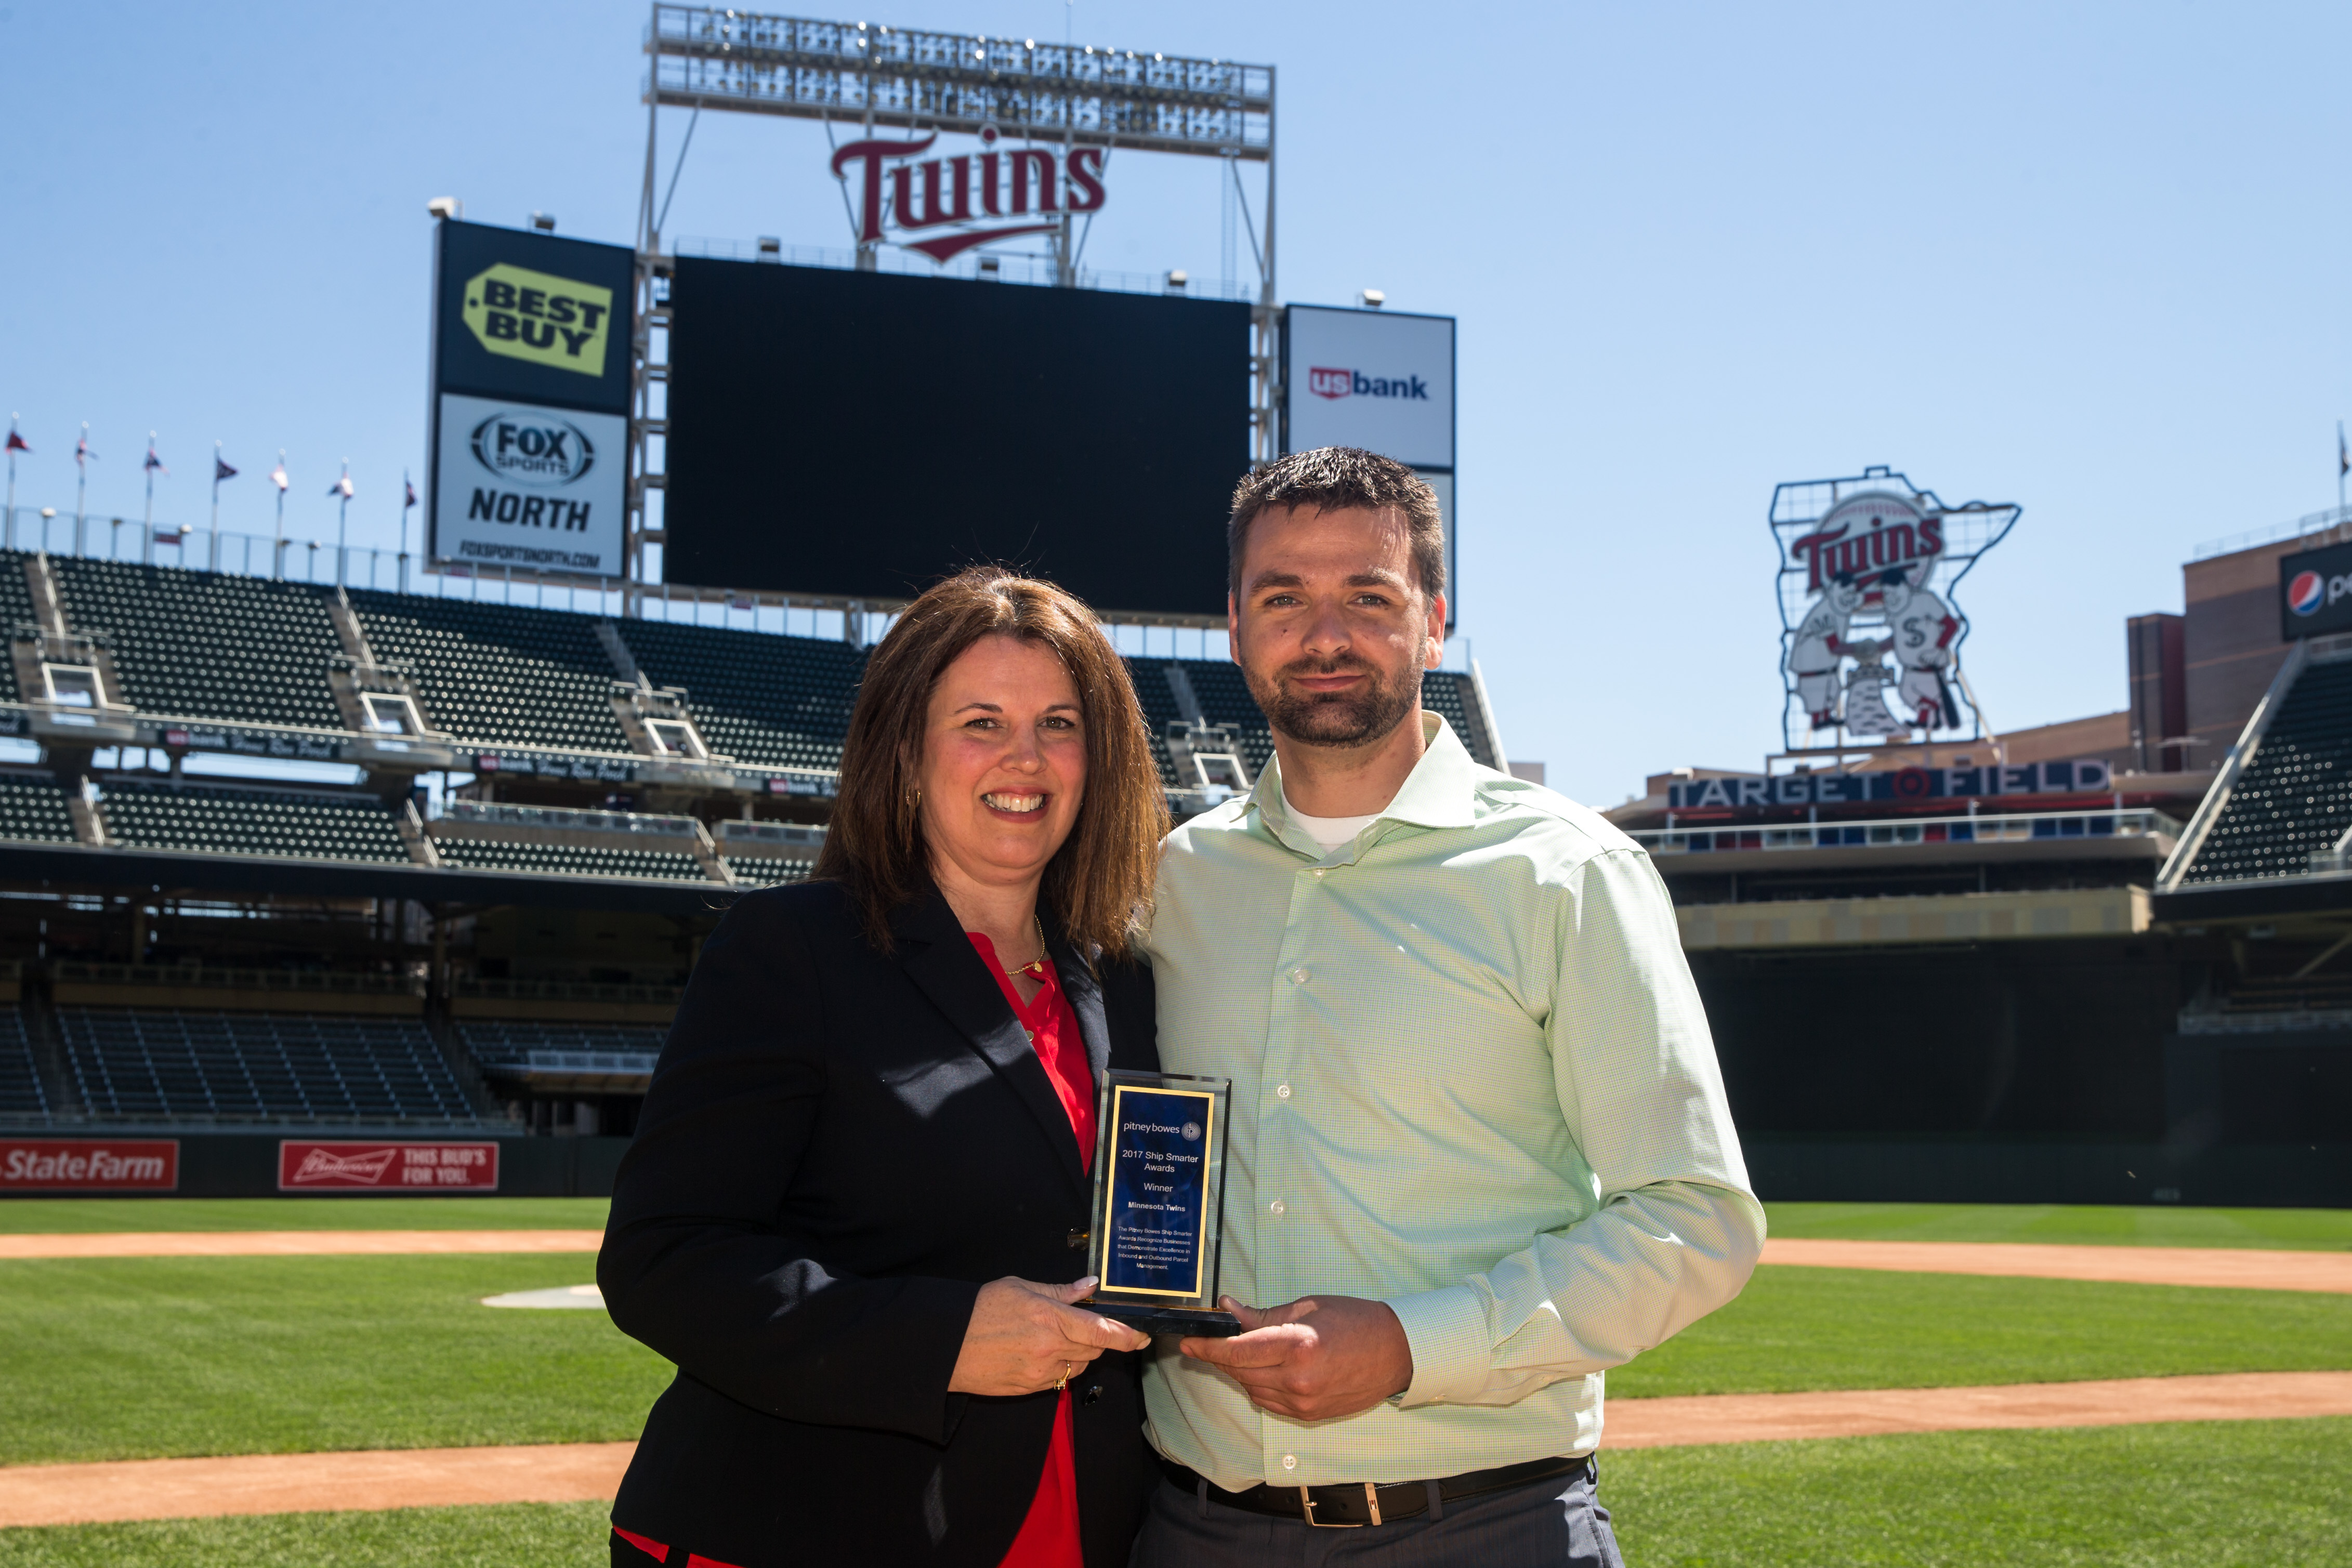 Minnesota Twins -- From left to right: Kelly George, Major Account Manager, Pitney Bowes and Josh Fallin, Office Services Coordinator, Minnesota Twins (Photo: Business Wire)